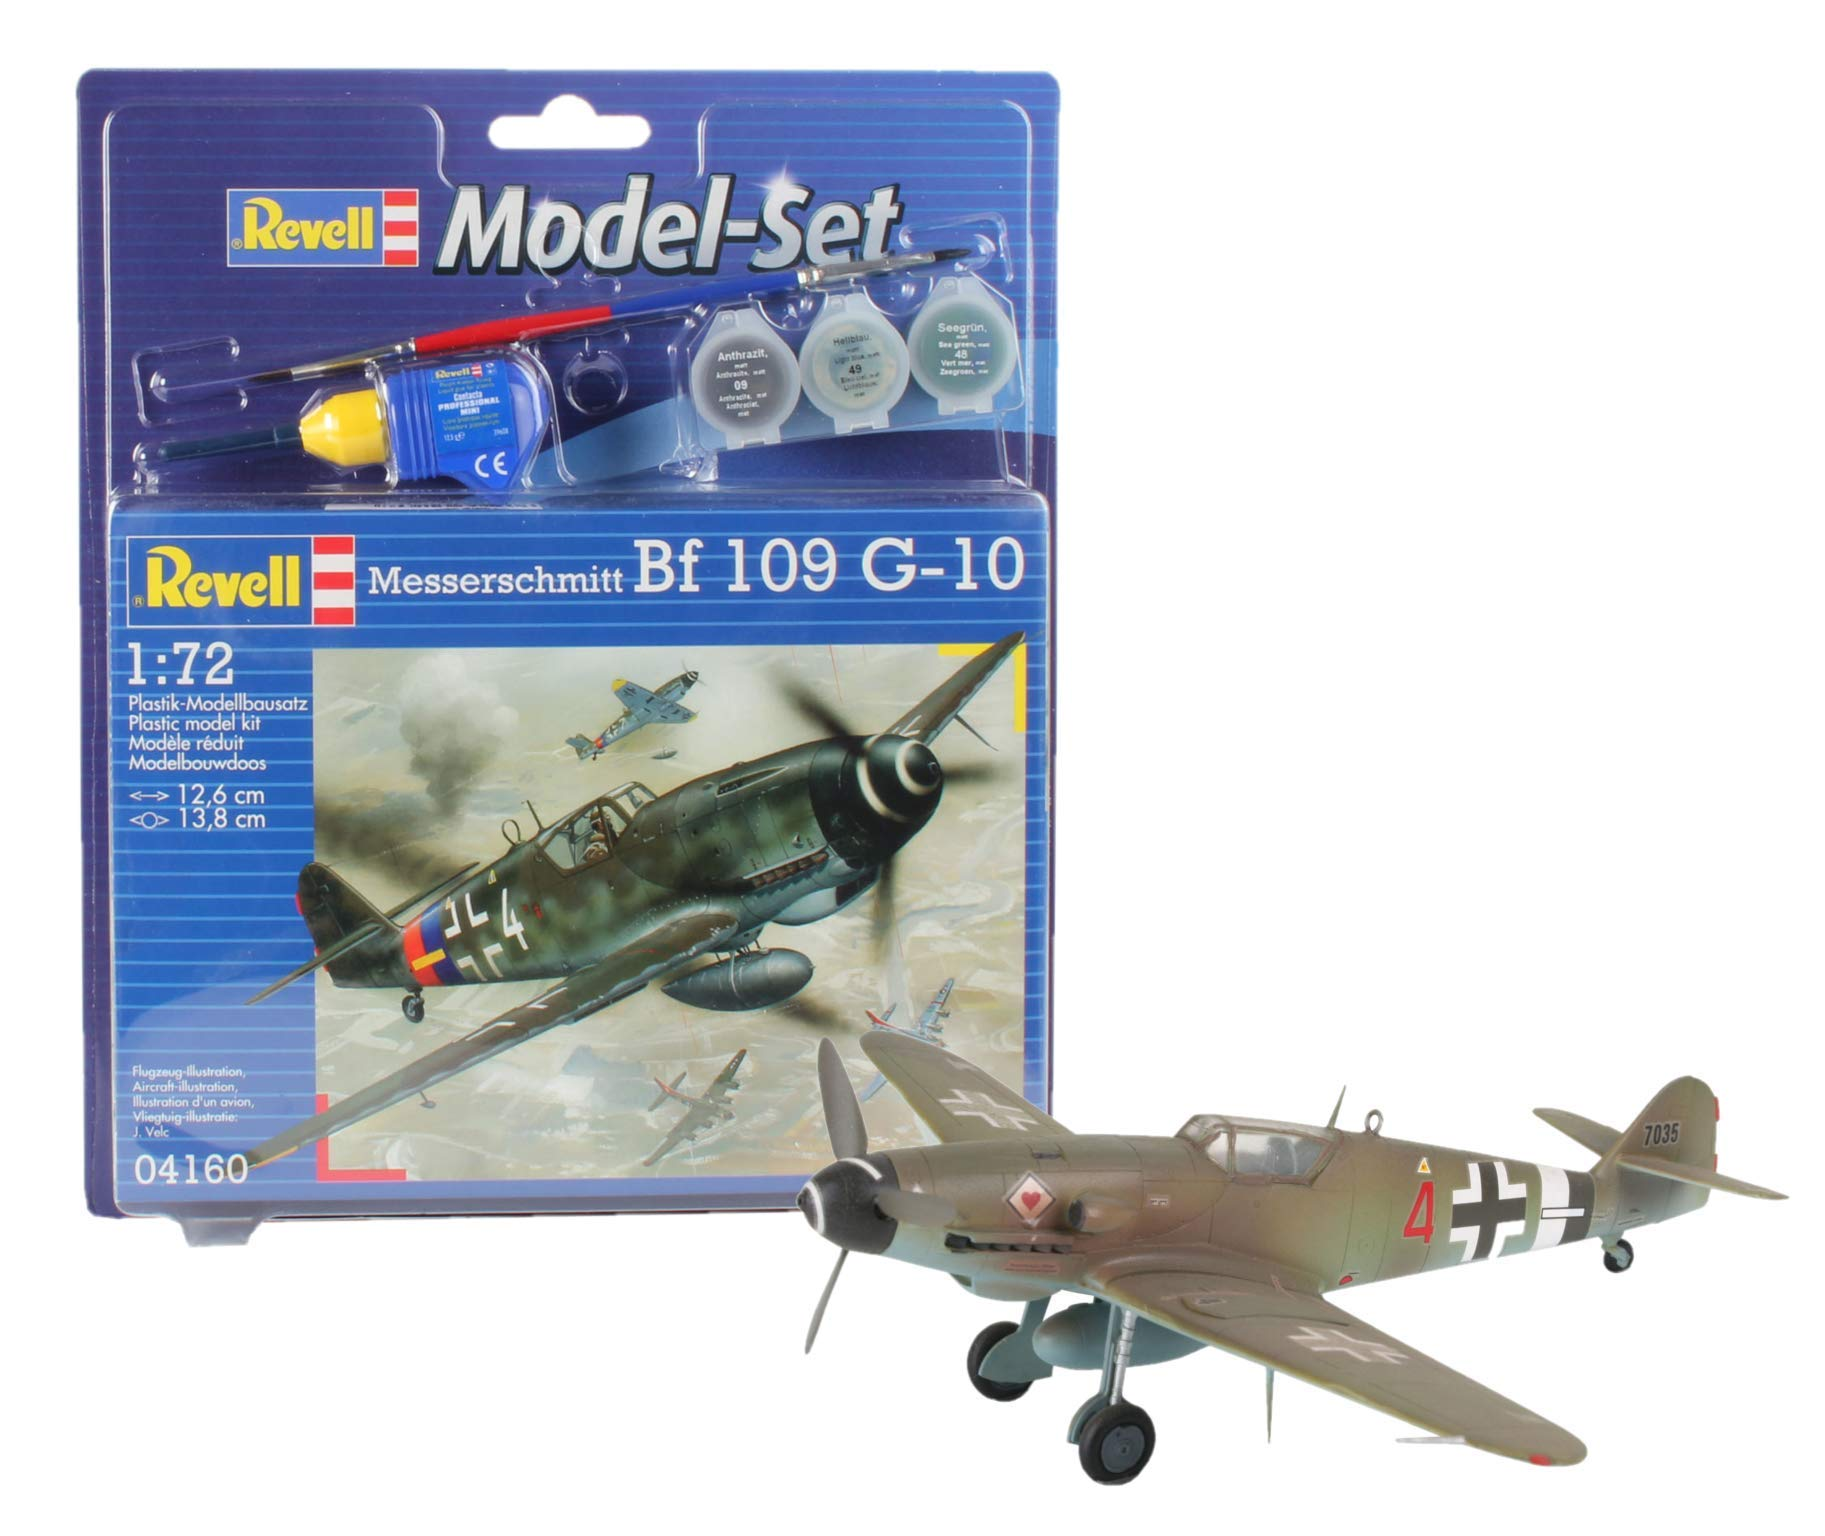 Revell Messerschmitt Bf-109 Model Kit Set 1:72 With Paints, Brush & Adhesive